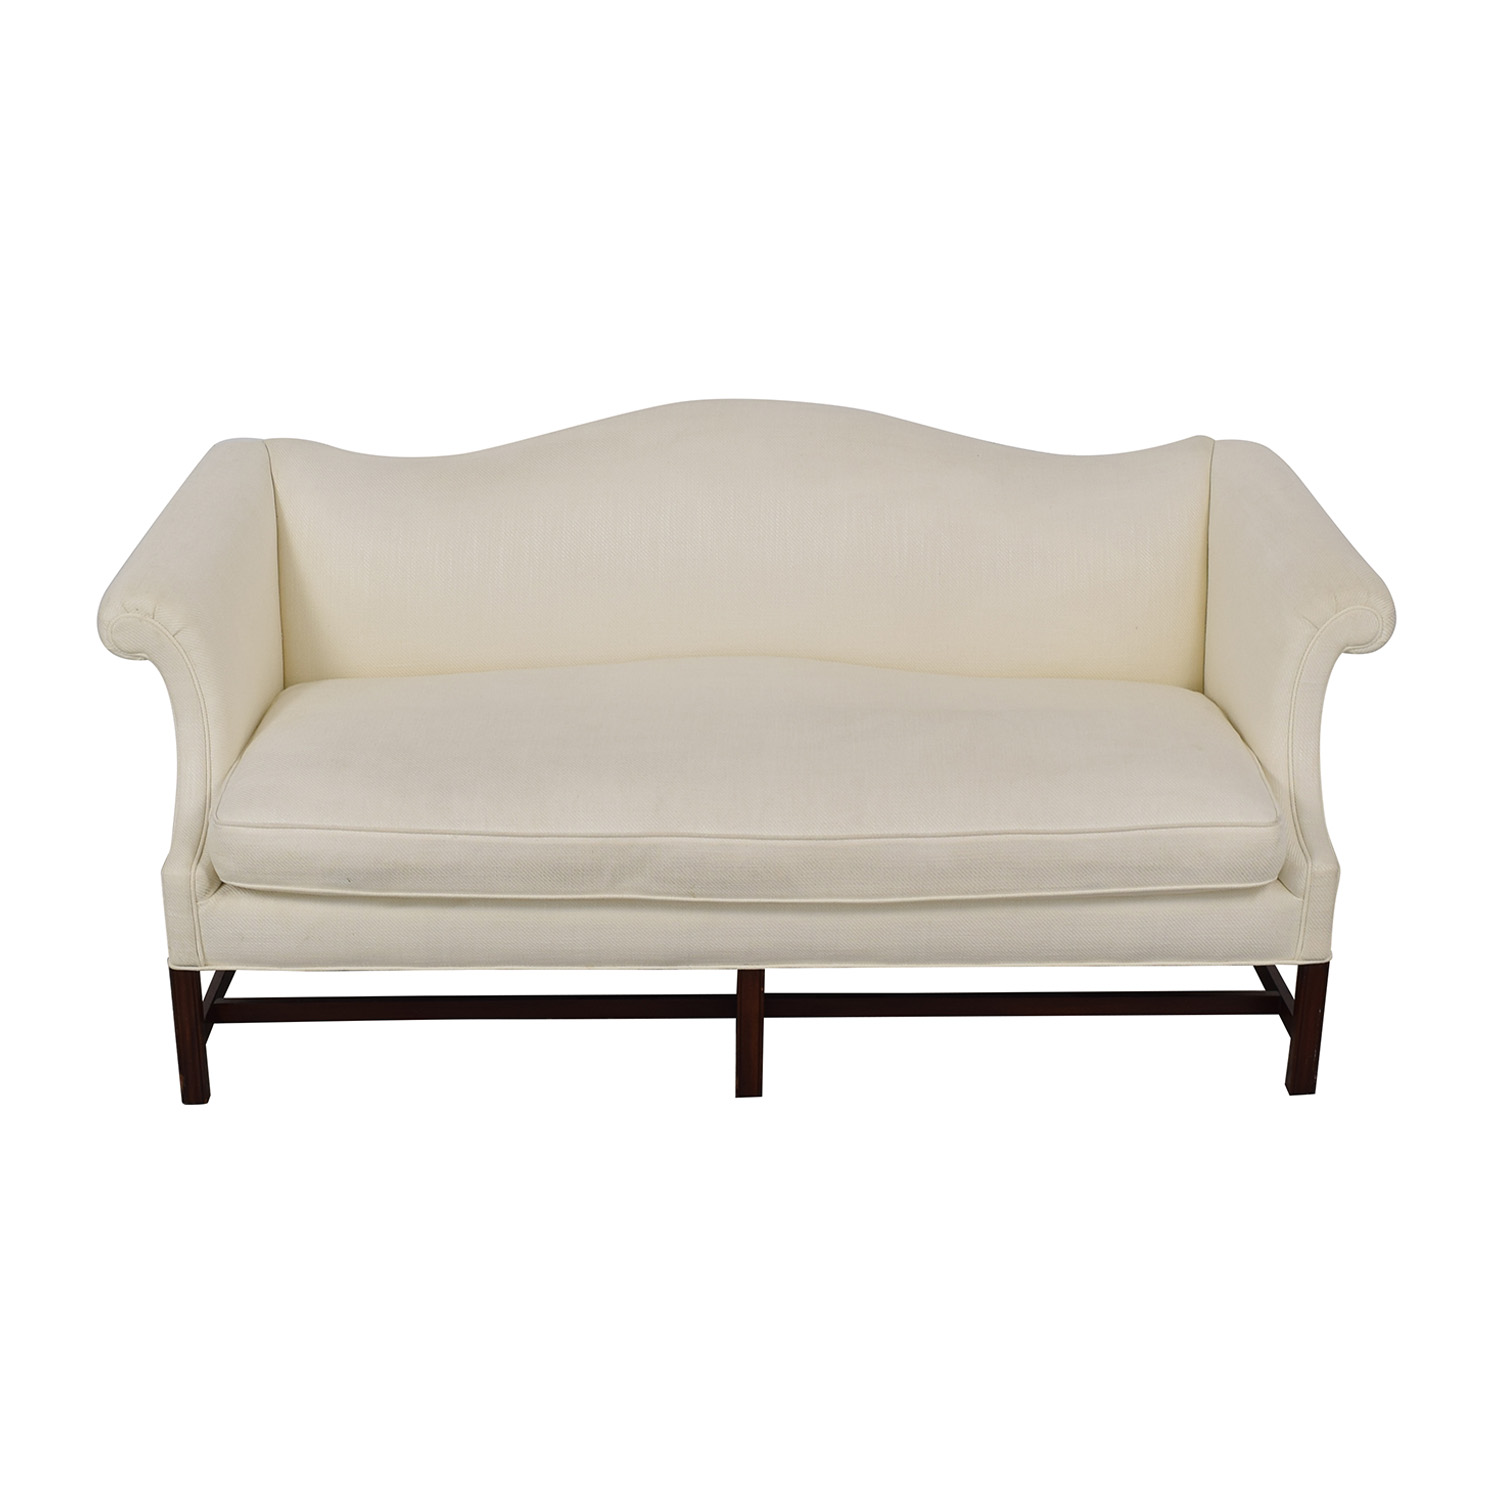 buy  White Linen Camel Back Couch online